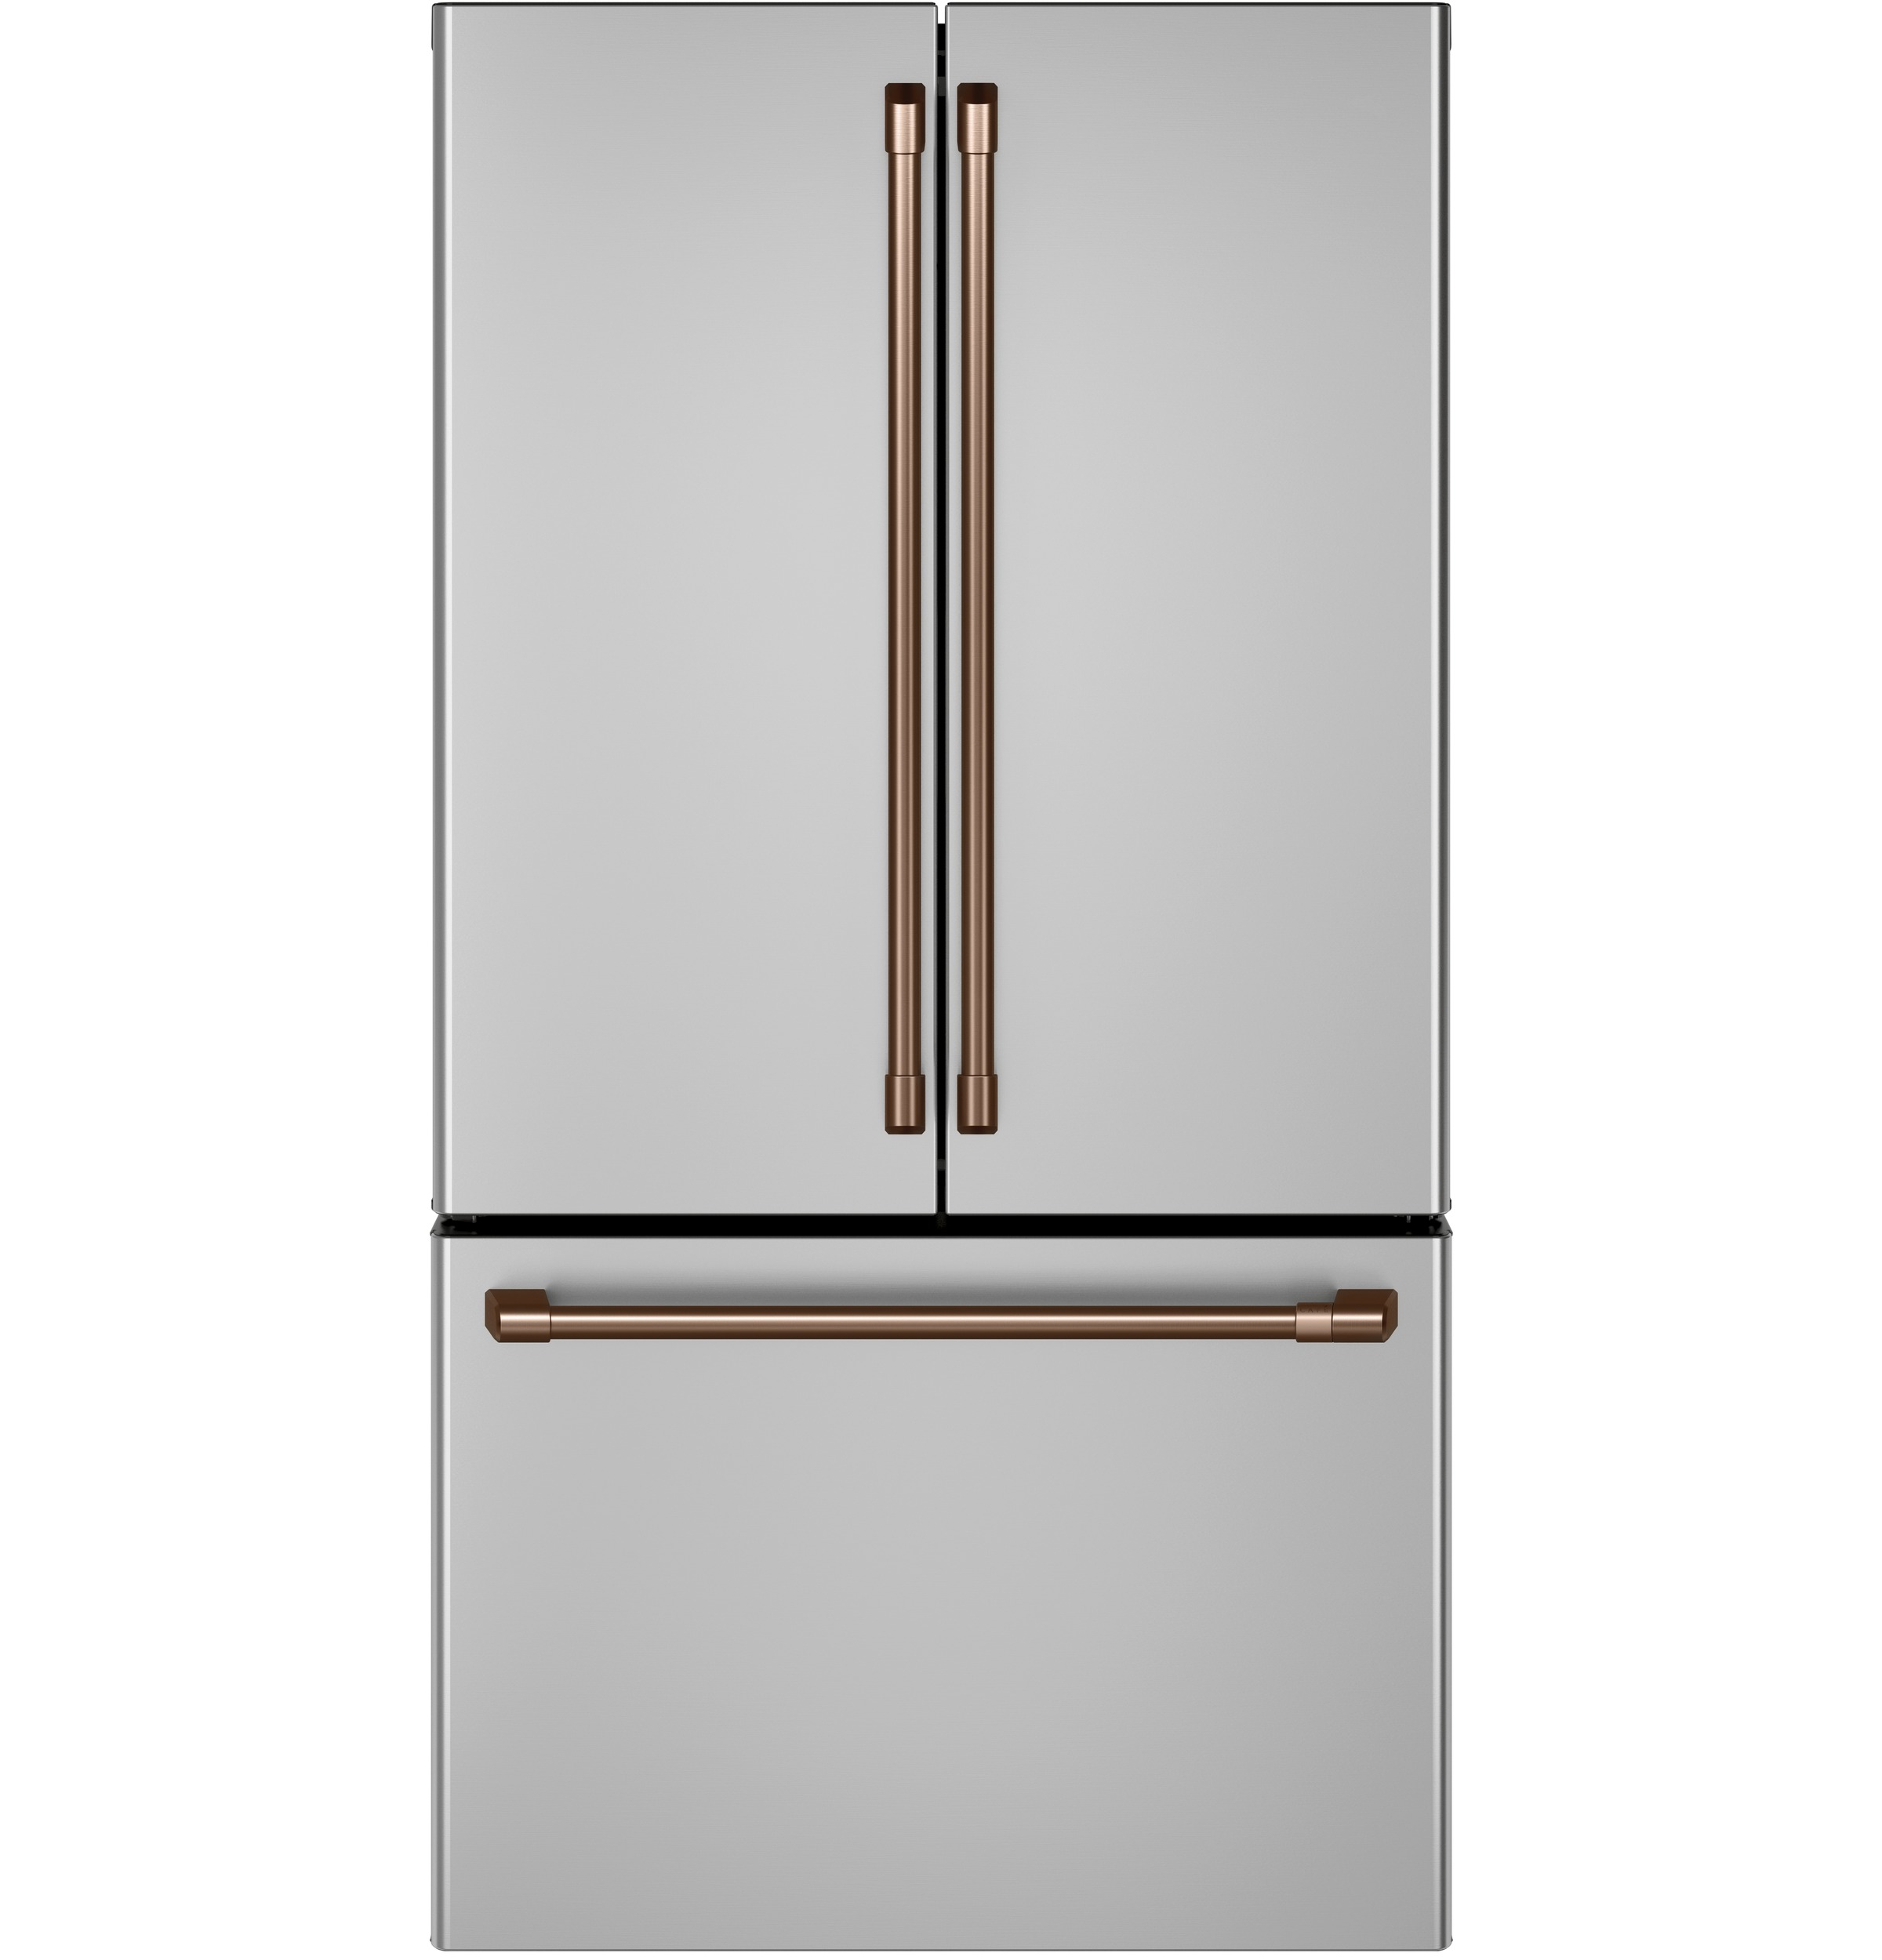 Model: CWE23SP2MS1 | Cafe Café™ ENERGY STAR® 23.1 Cu. Ft. Smart Counter-Depth French-Door Refrigerator